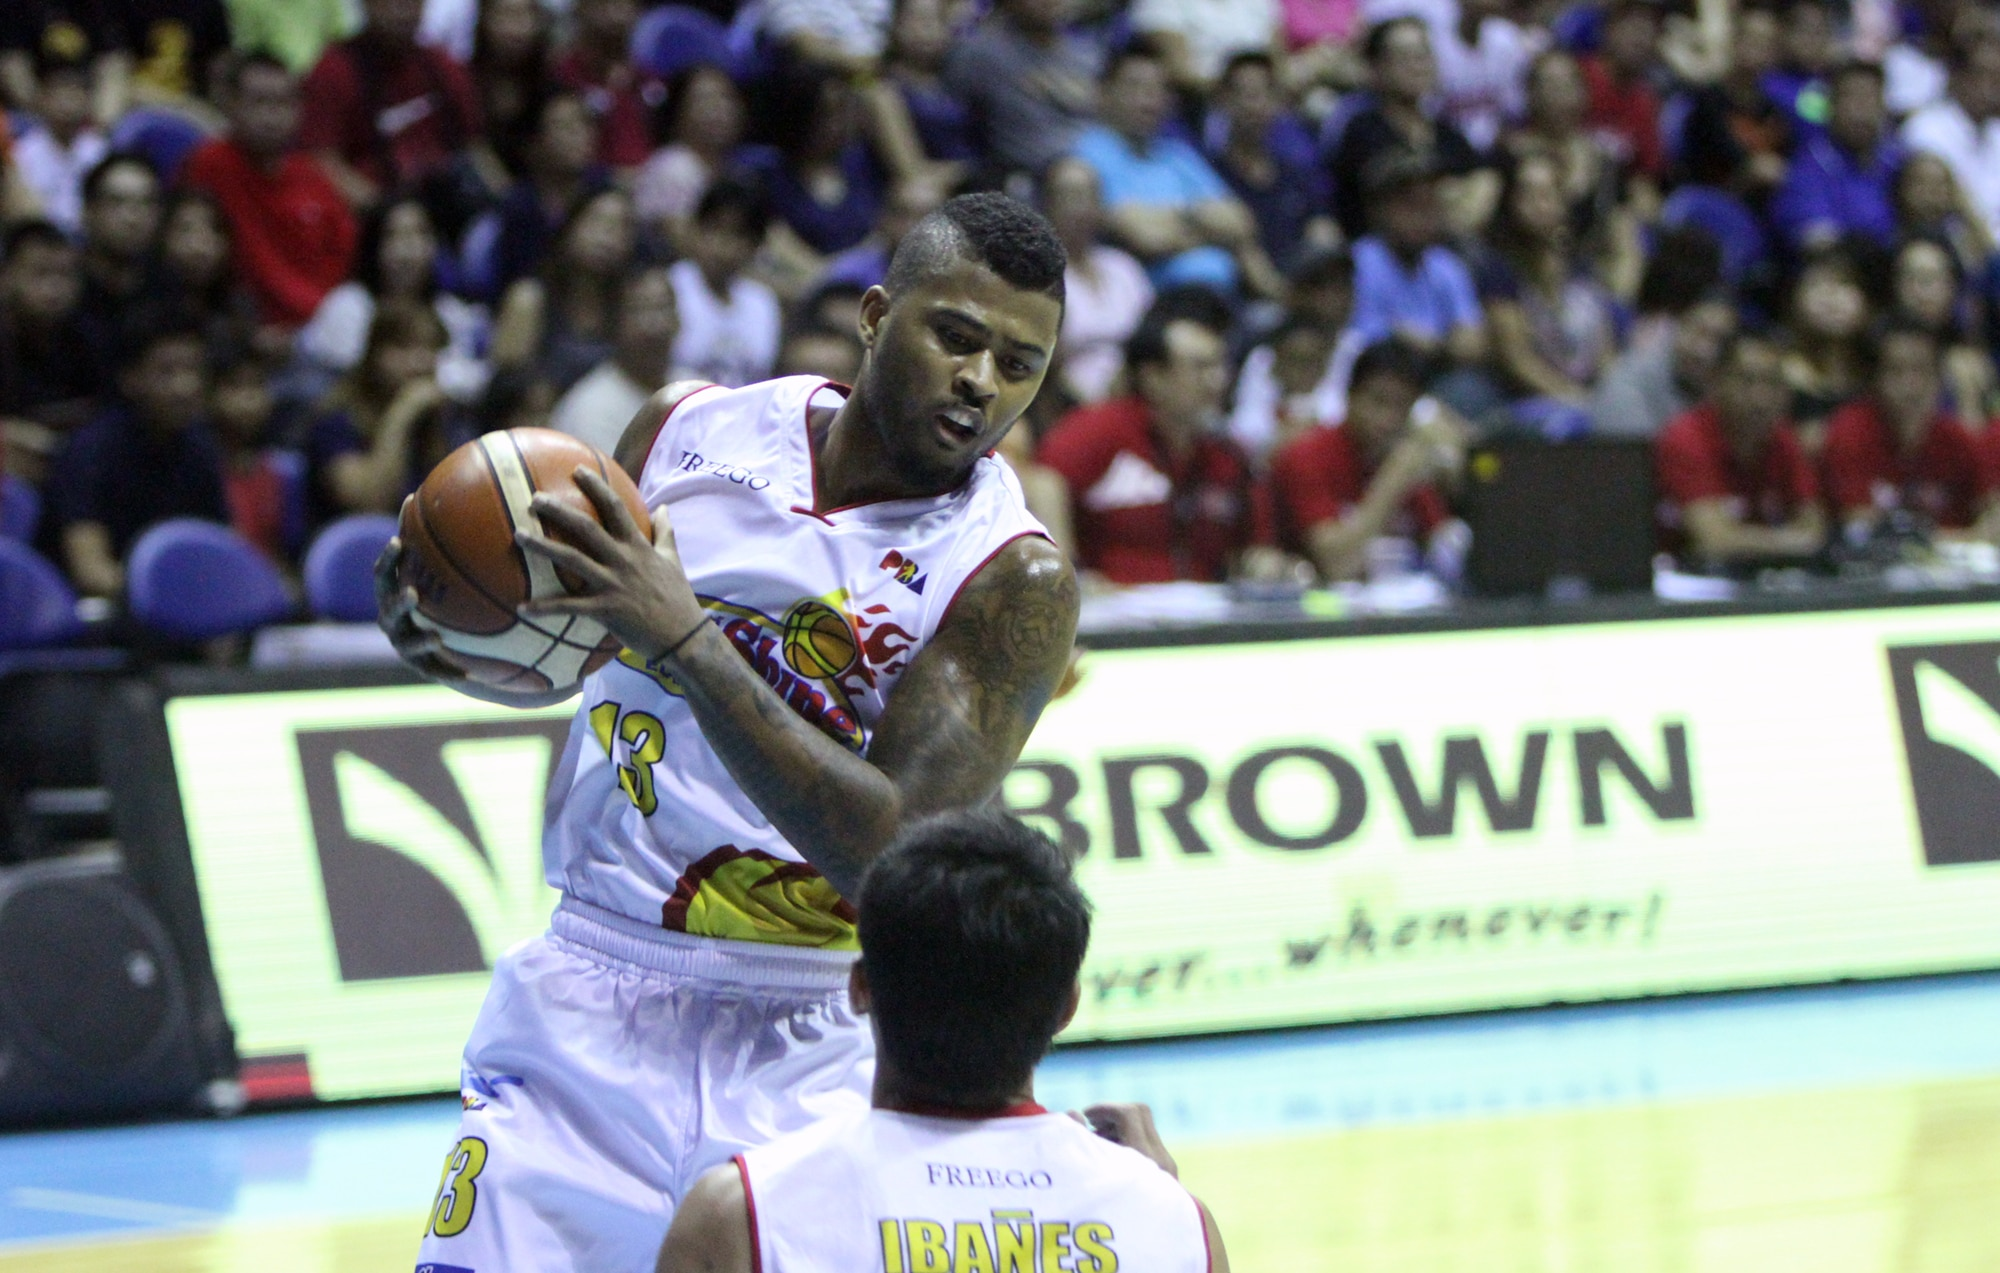 Rain or Shine downs Ginebra to earn share of lead